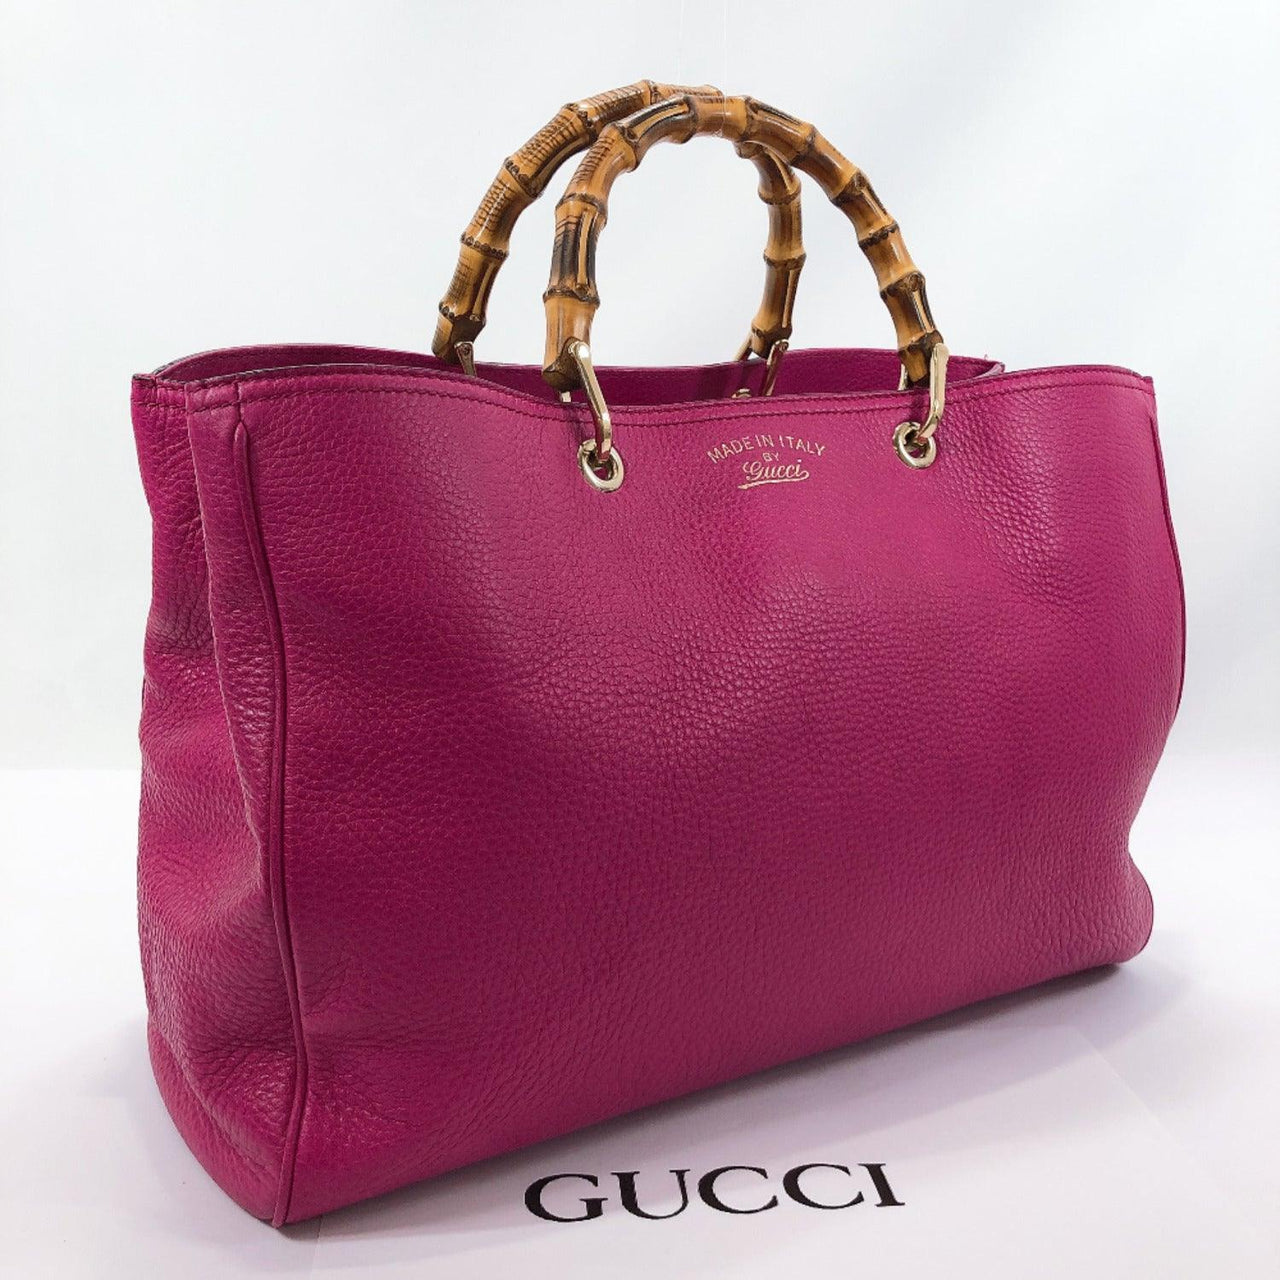 GUCCI Tote Bag 323658 Bamboo leather pink Women Used